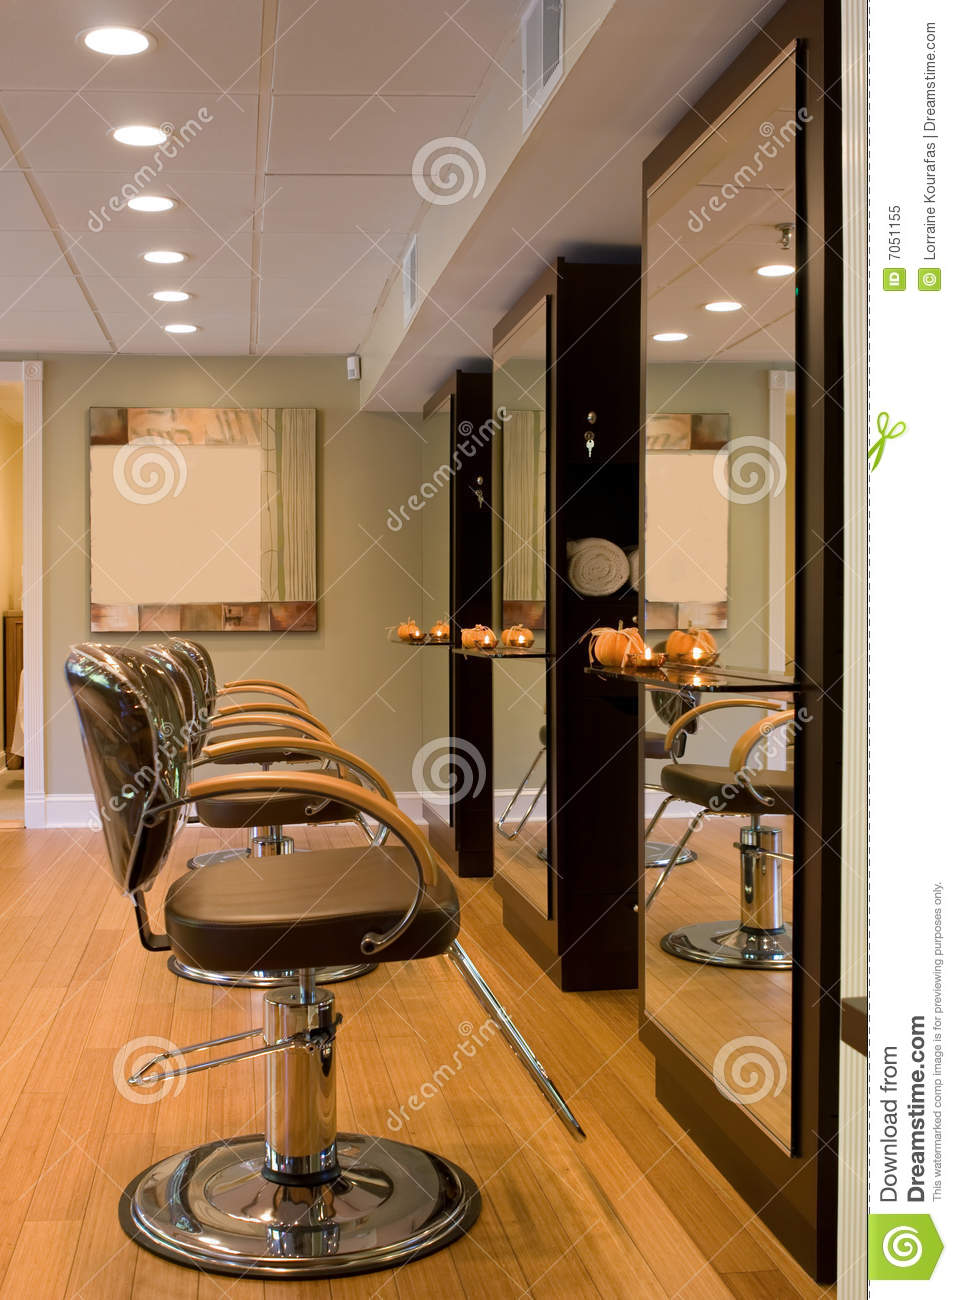 Interior new hair salon royalty free stock photo image for A new image salon